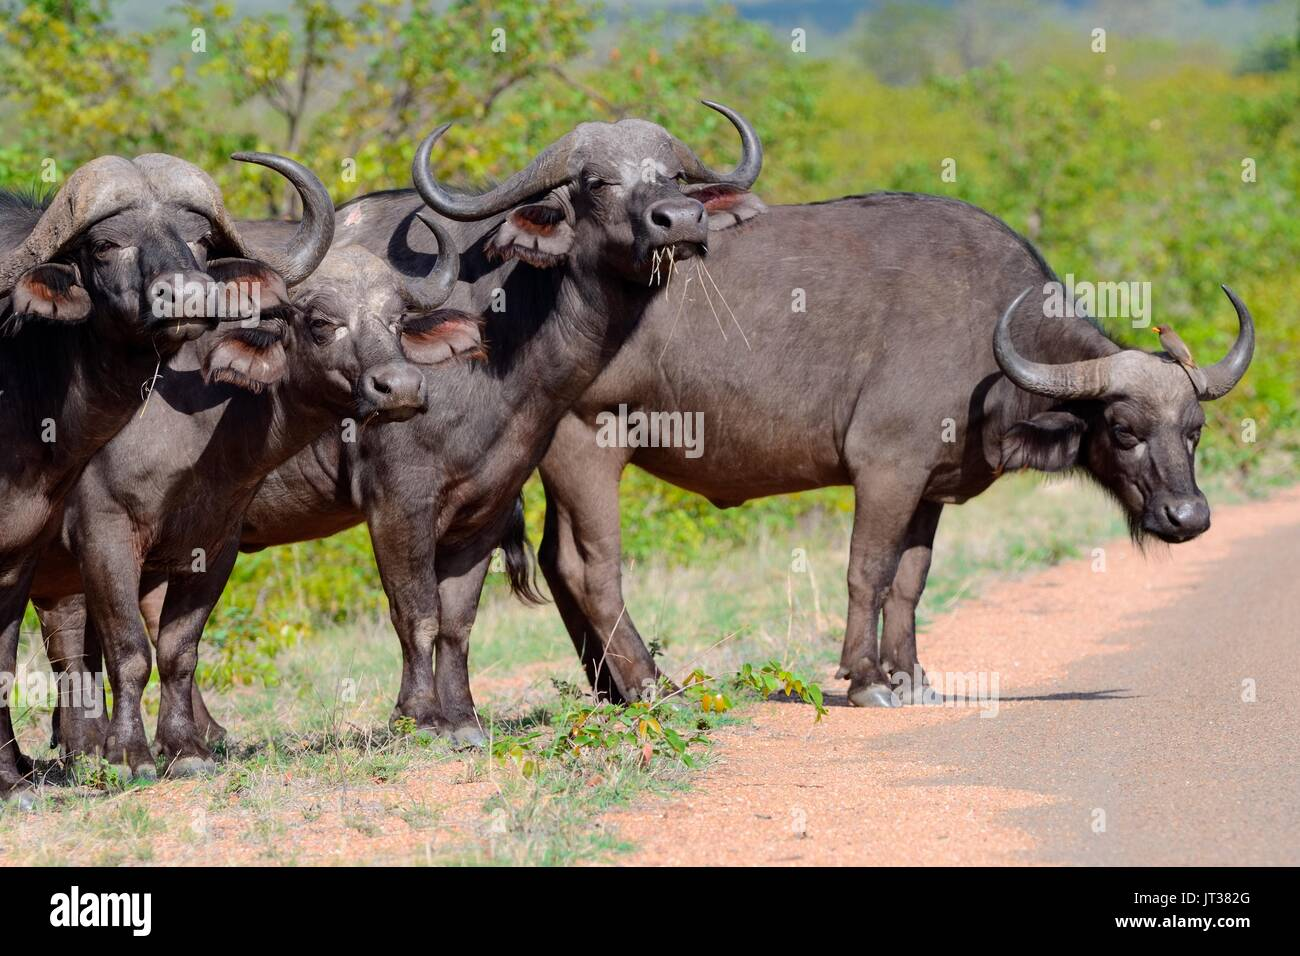 African buffaloes (Syncerus caffer) standing in row by the side of the paved road with one Red-billed oxpecker (Buphagus erythrorhynchus), Kruger Nati - Stock Image